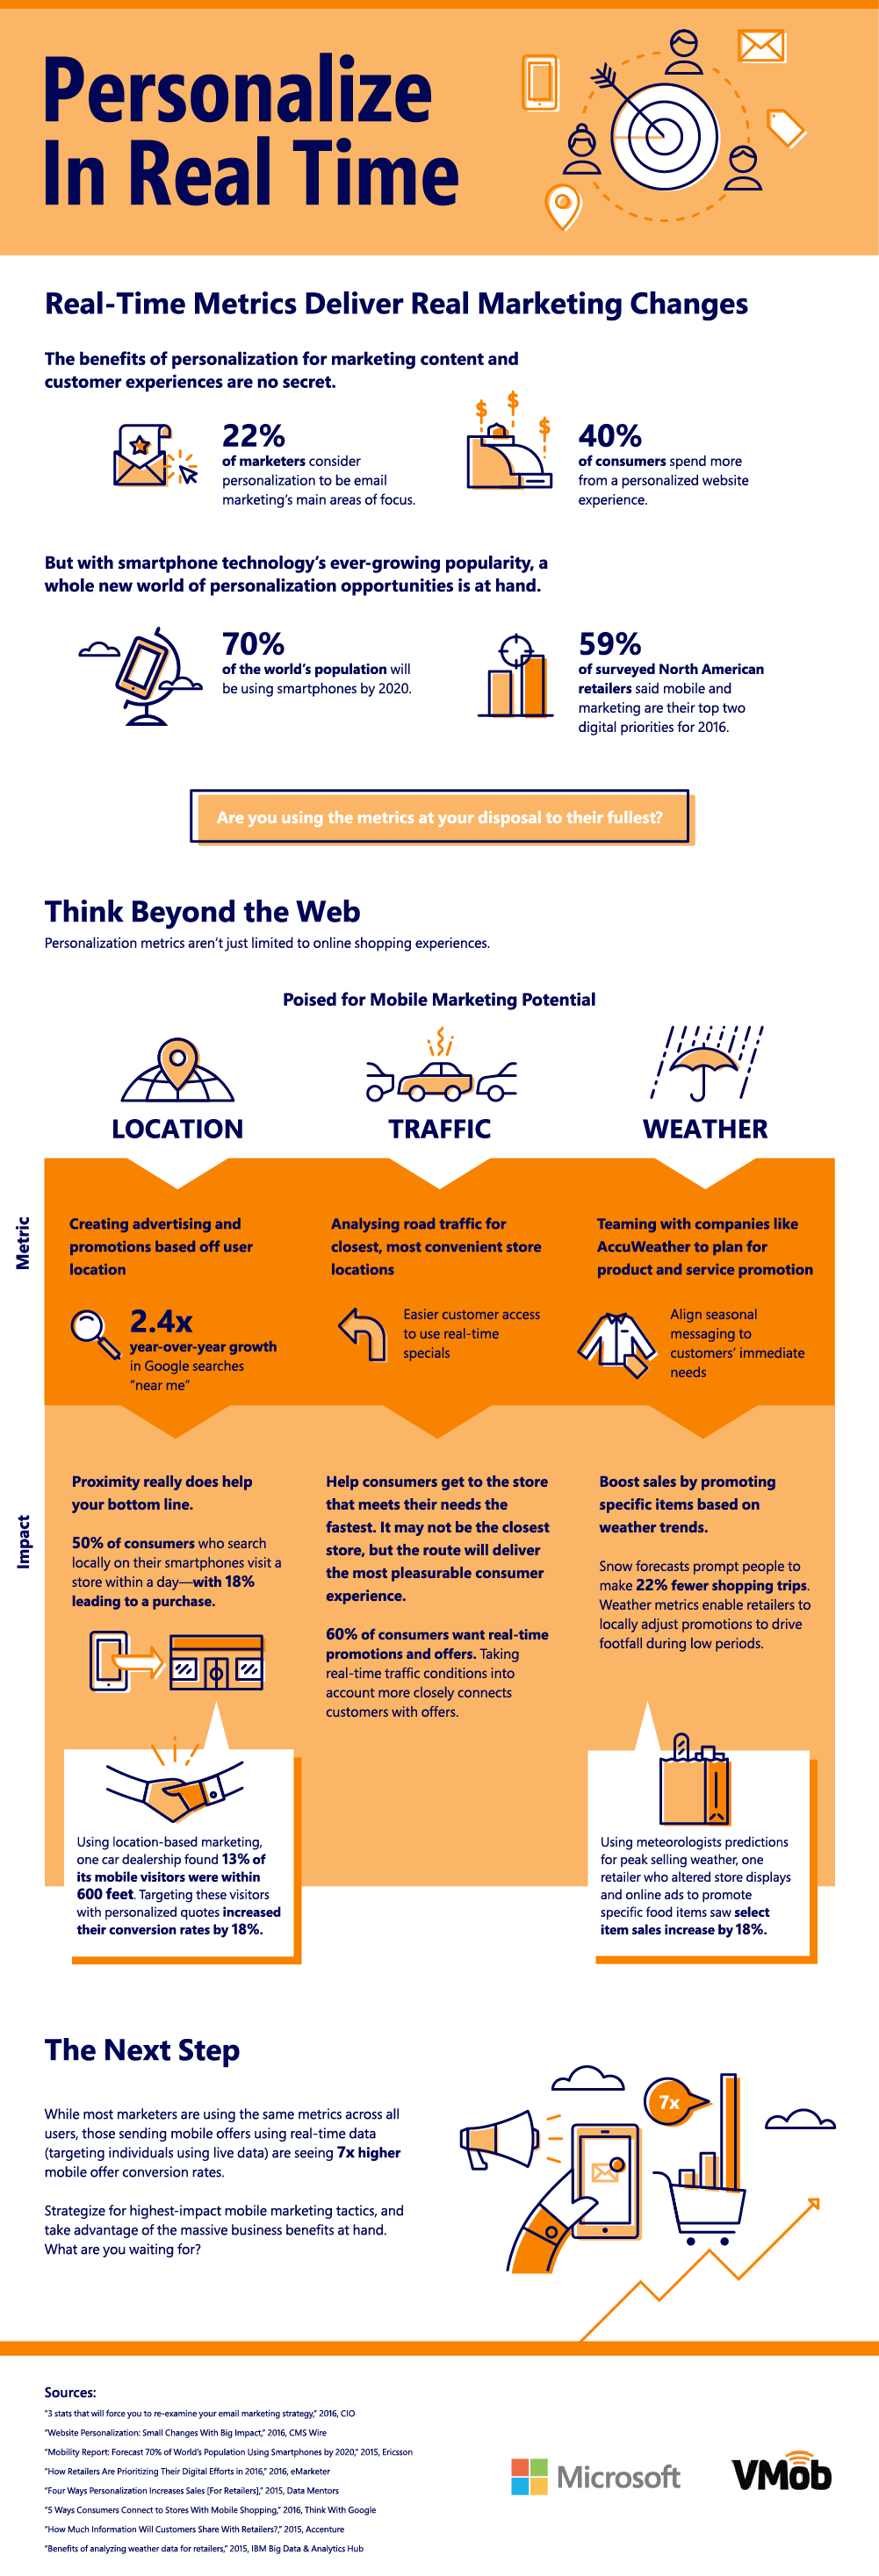 Personalize content in real time infographic